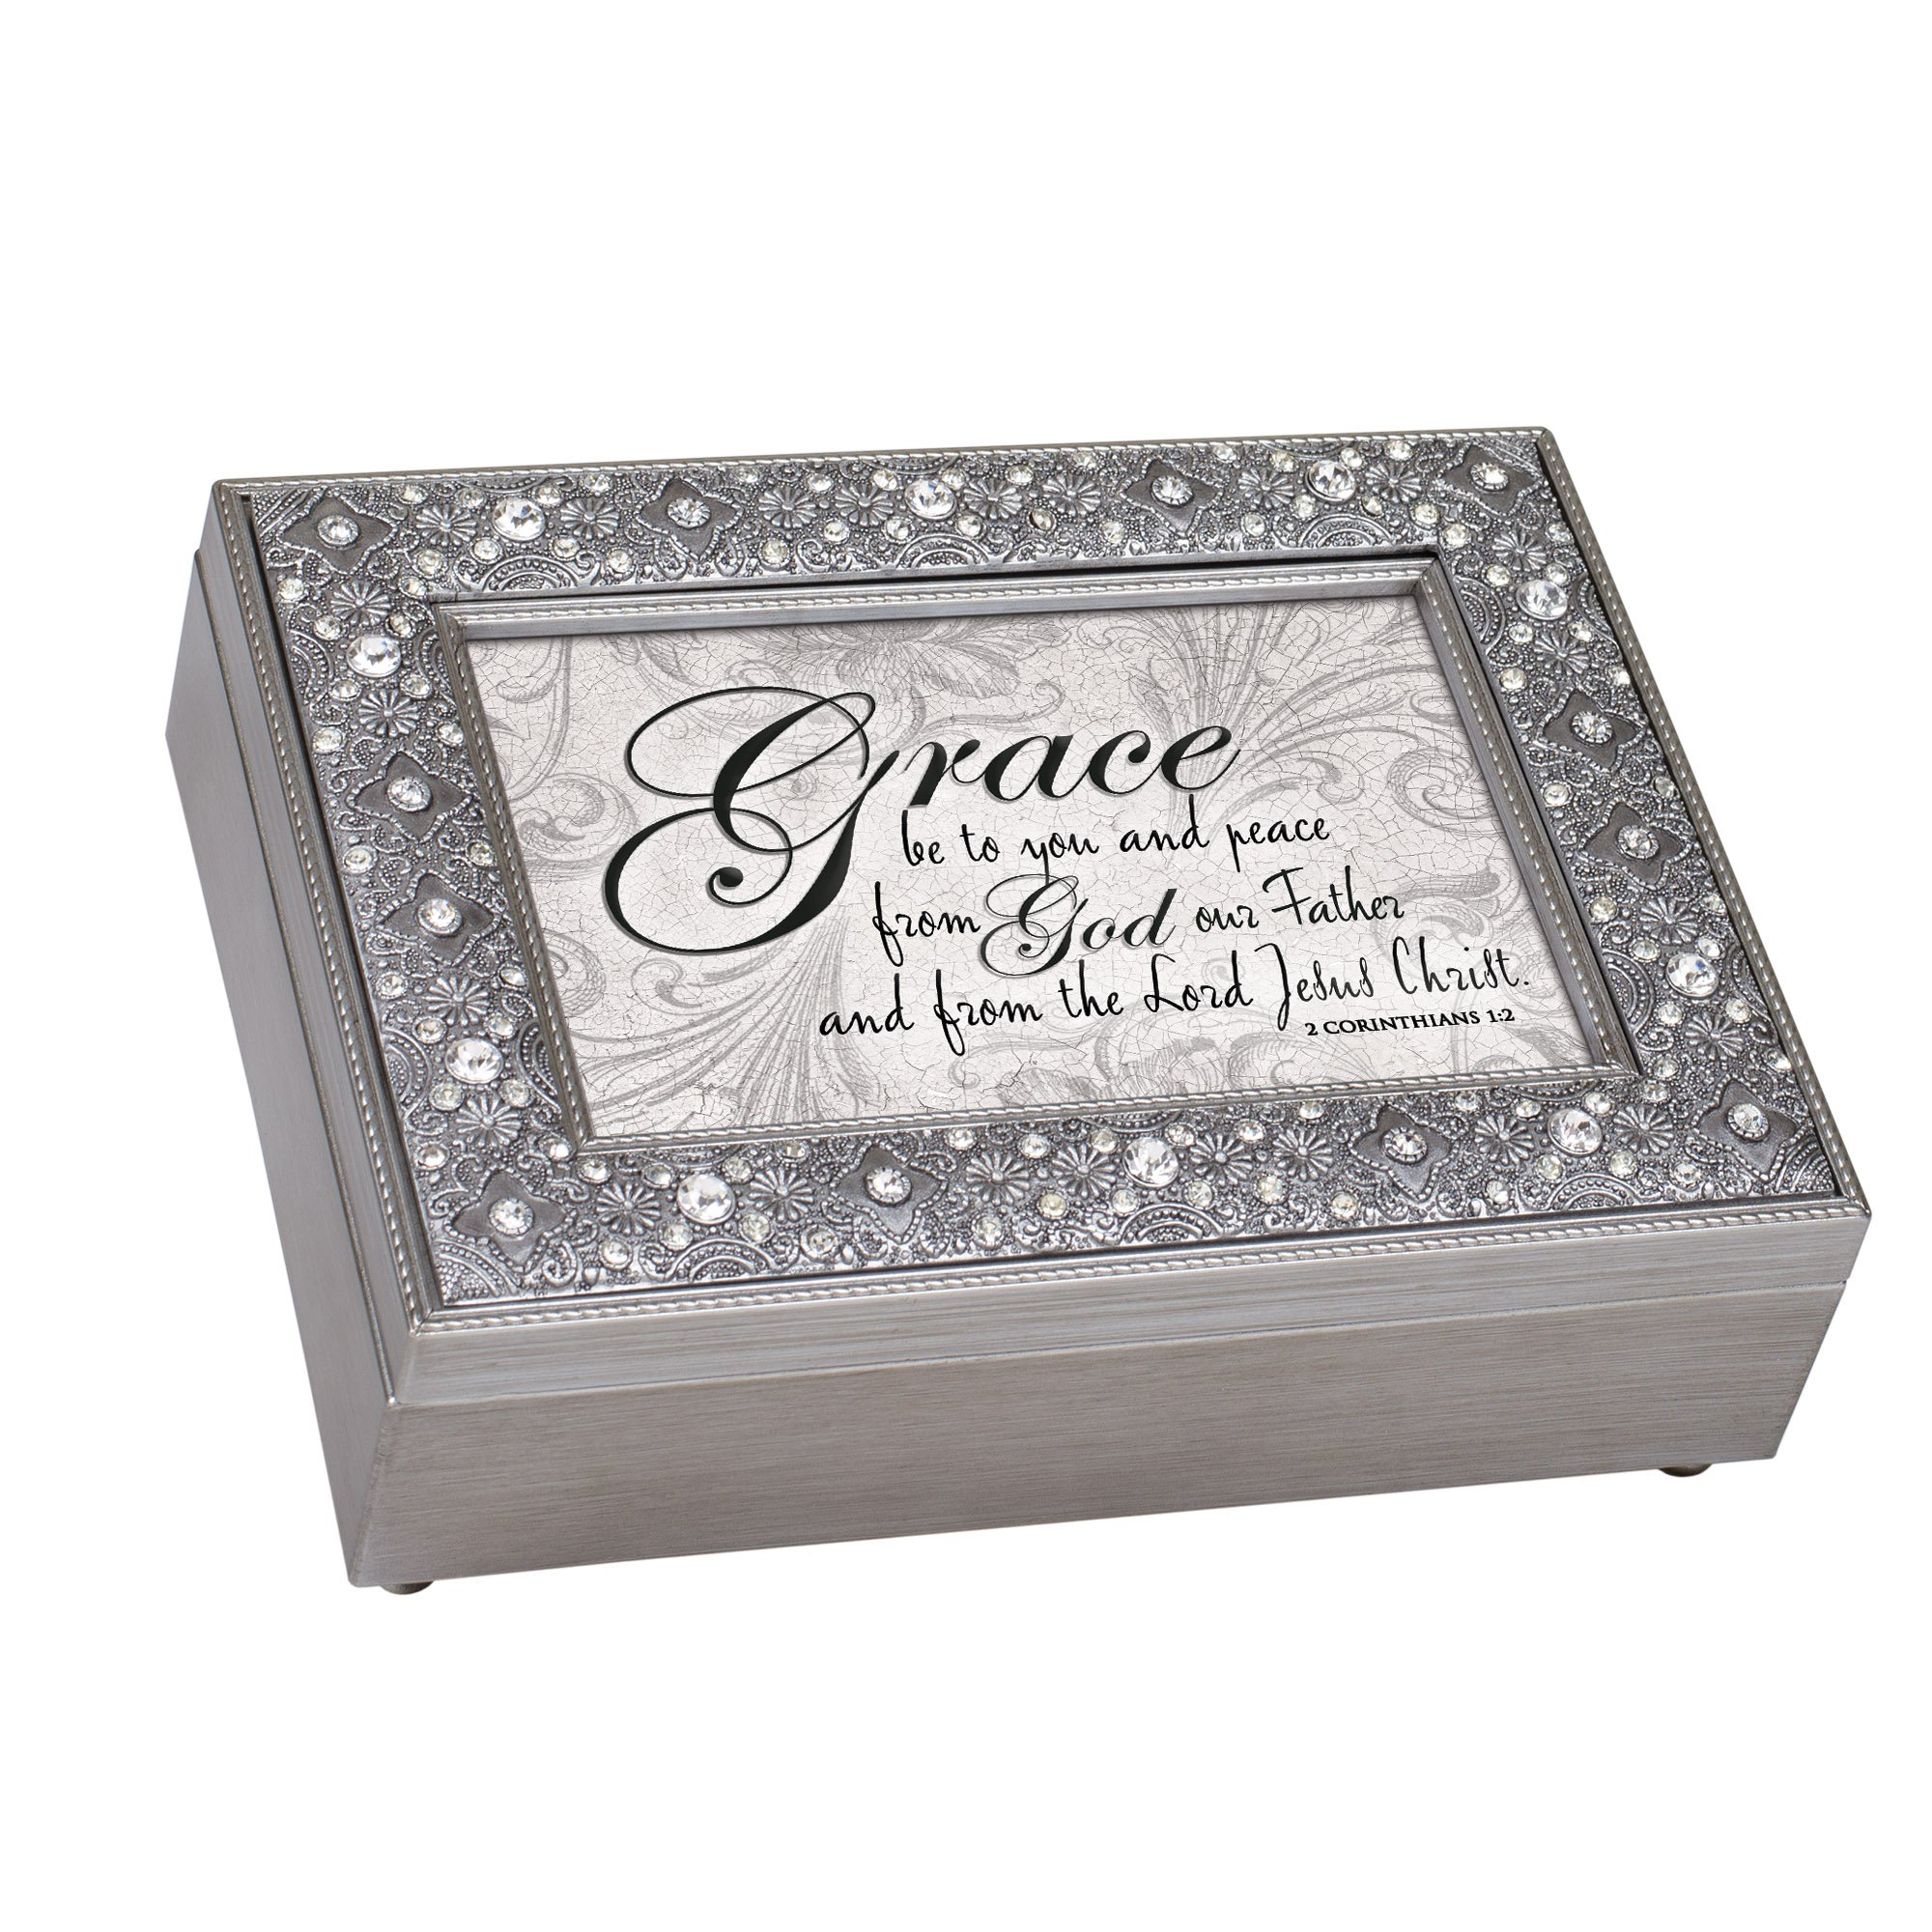 Cottage Garden Grace Peace From God Filigree Jewel Bead Silver Tone Music Box Plays Amazing Grace by Cottage Garden